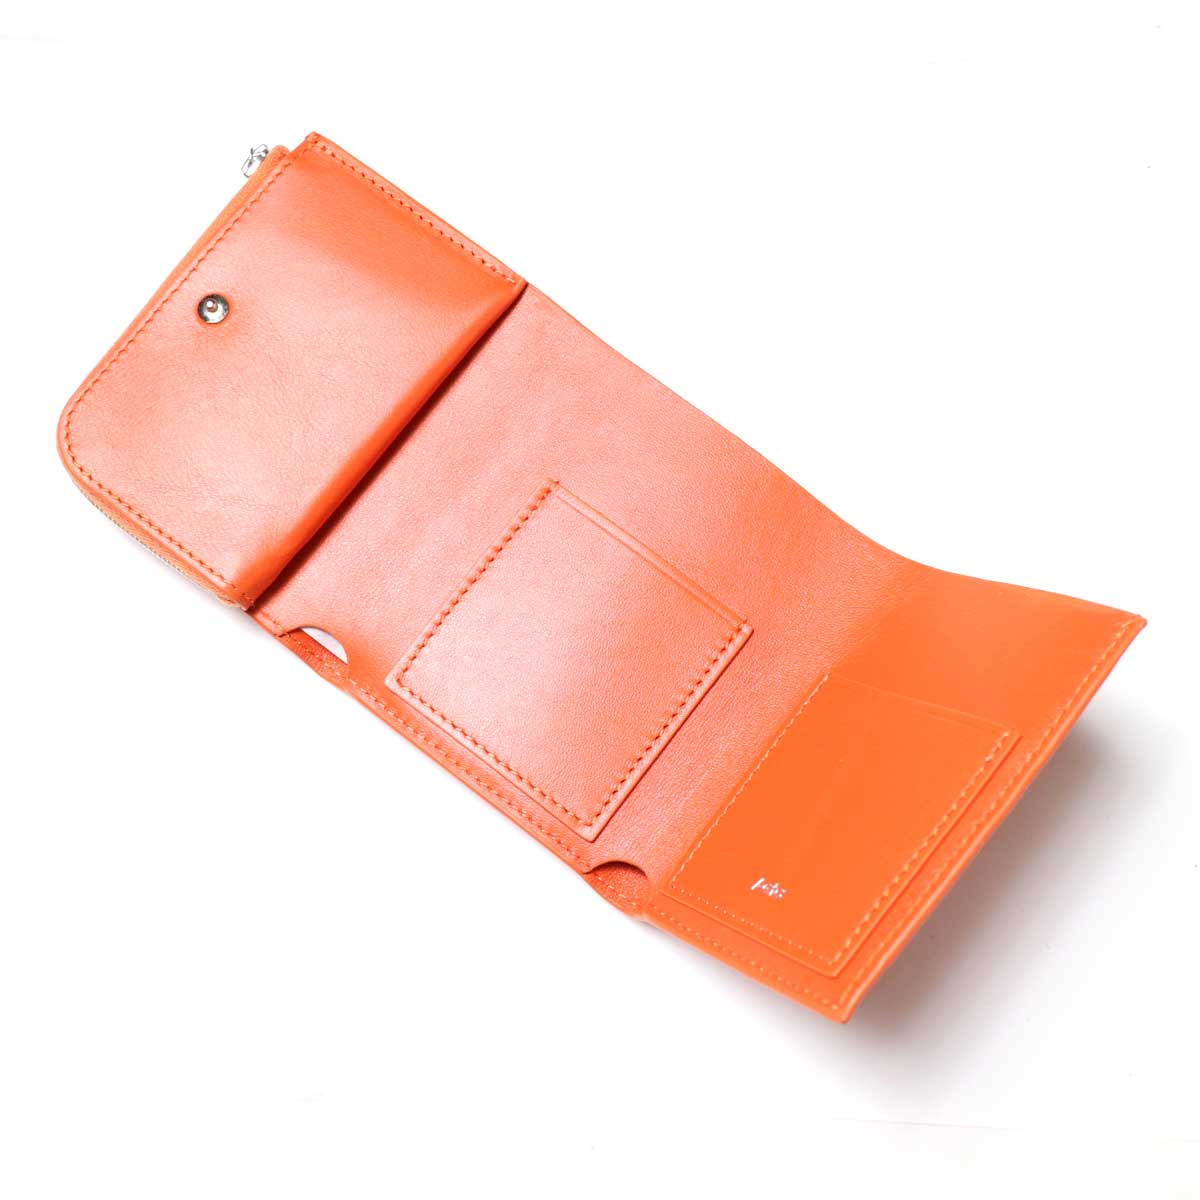 Aeta / FG LEATHER WALLET typeA 内側